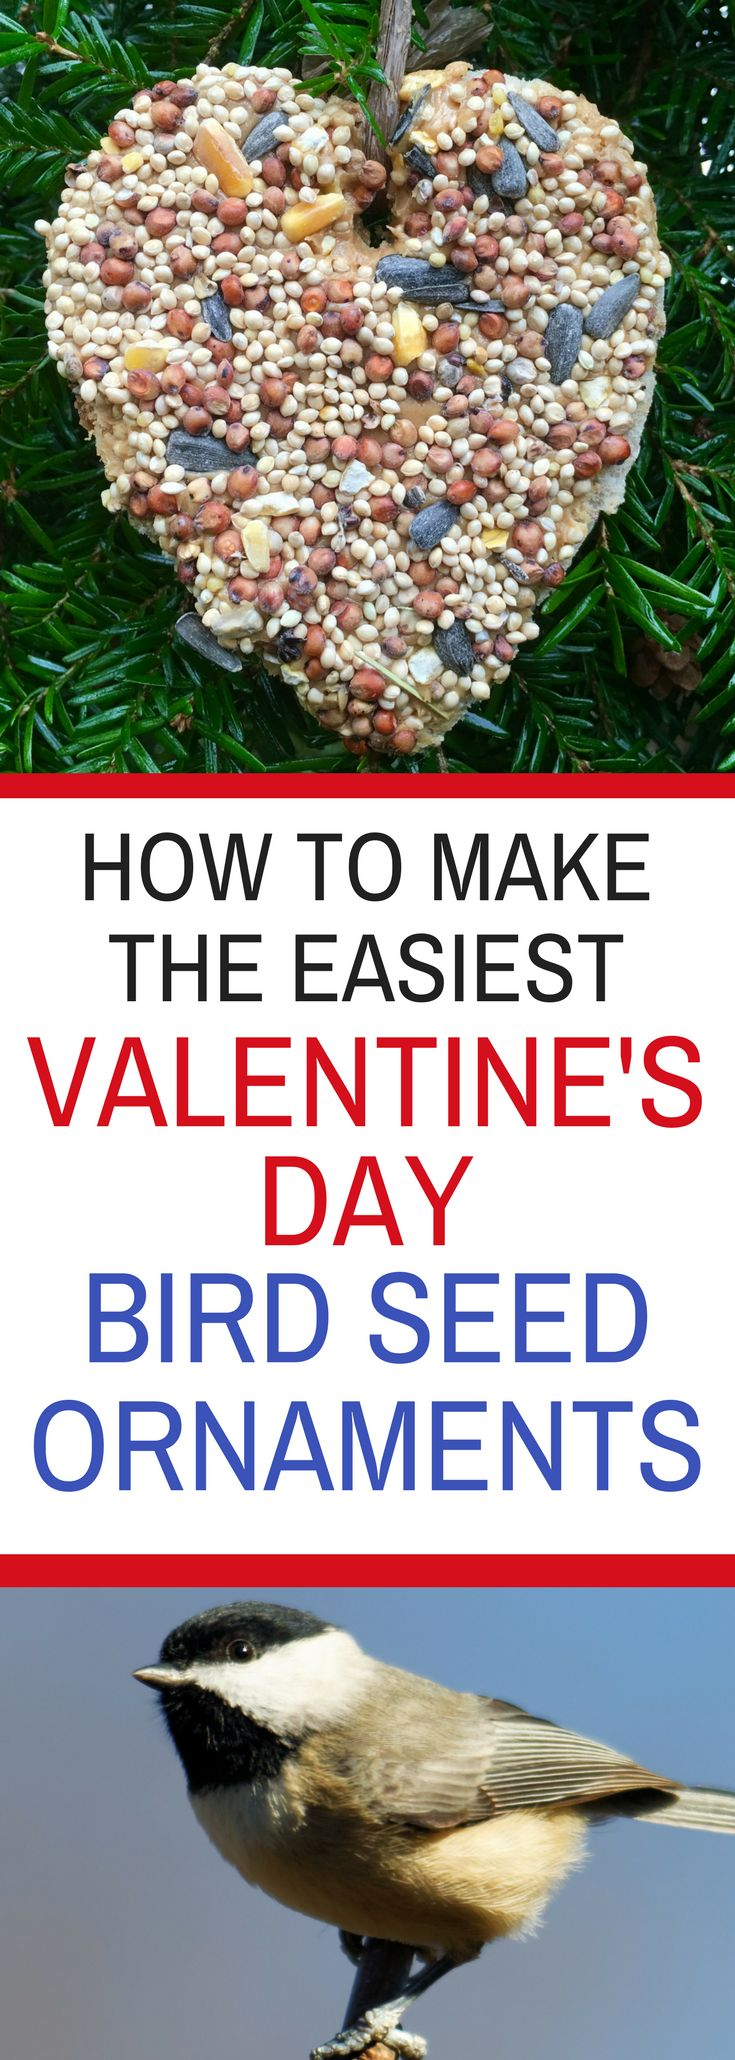 How to Make the Easiest Valentine's Day Bird Seed Ornaments Recipe without gelatin.  Healthy bird treats that that kids will love to craft!